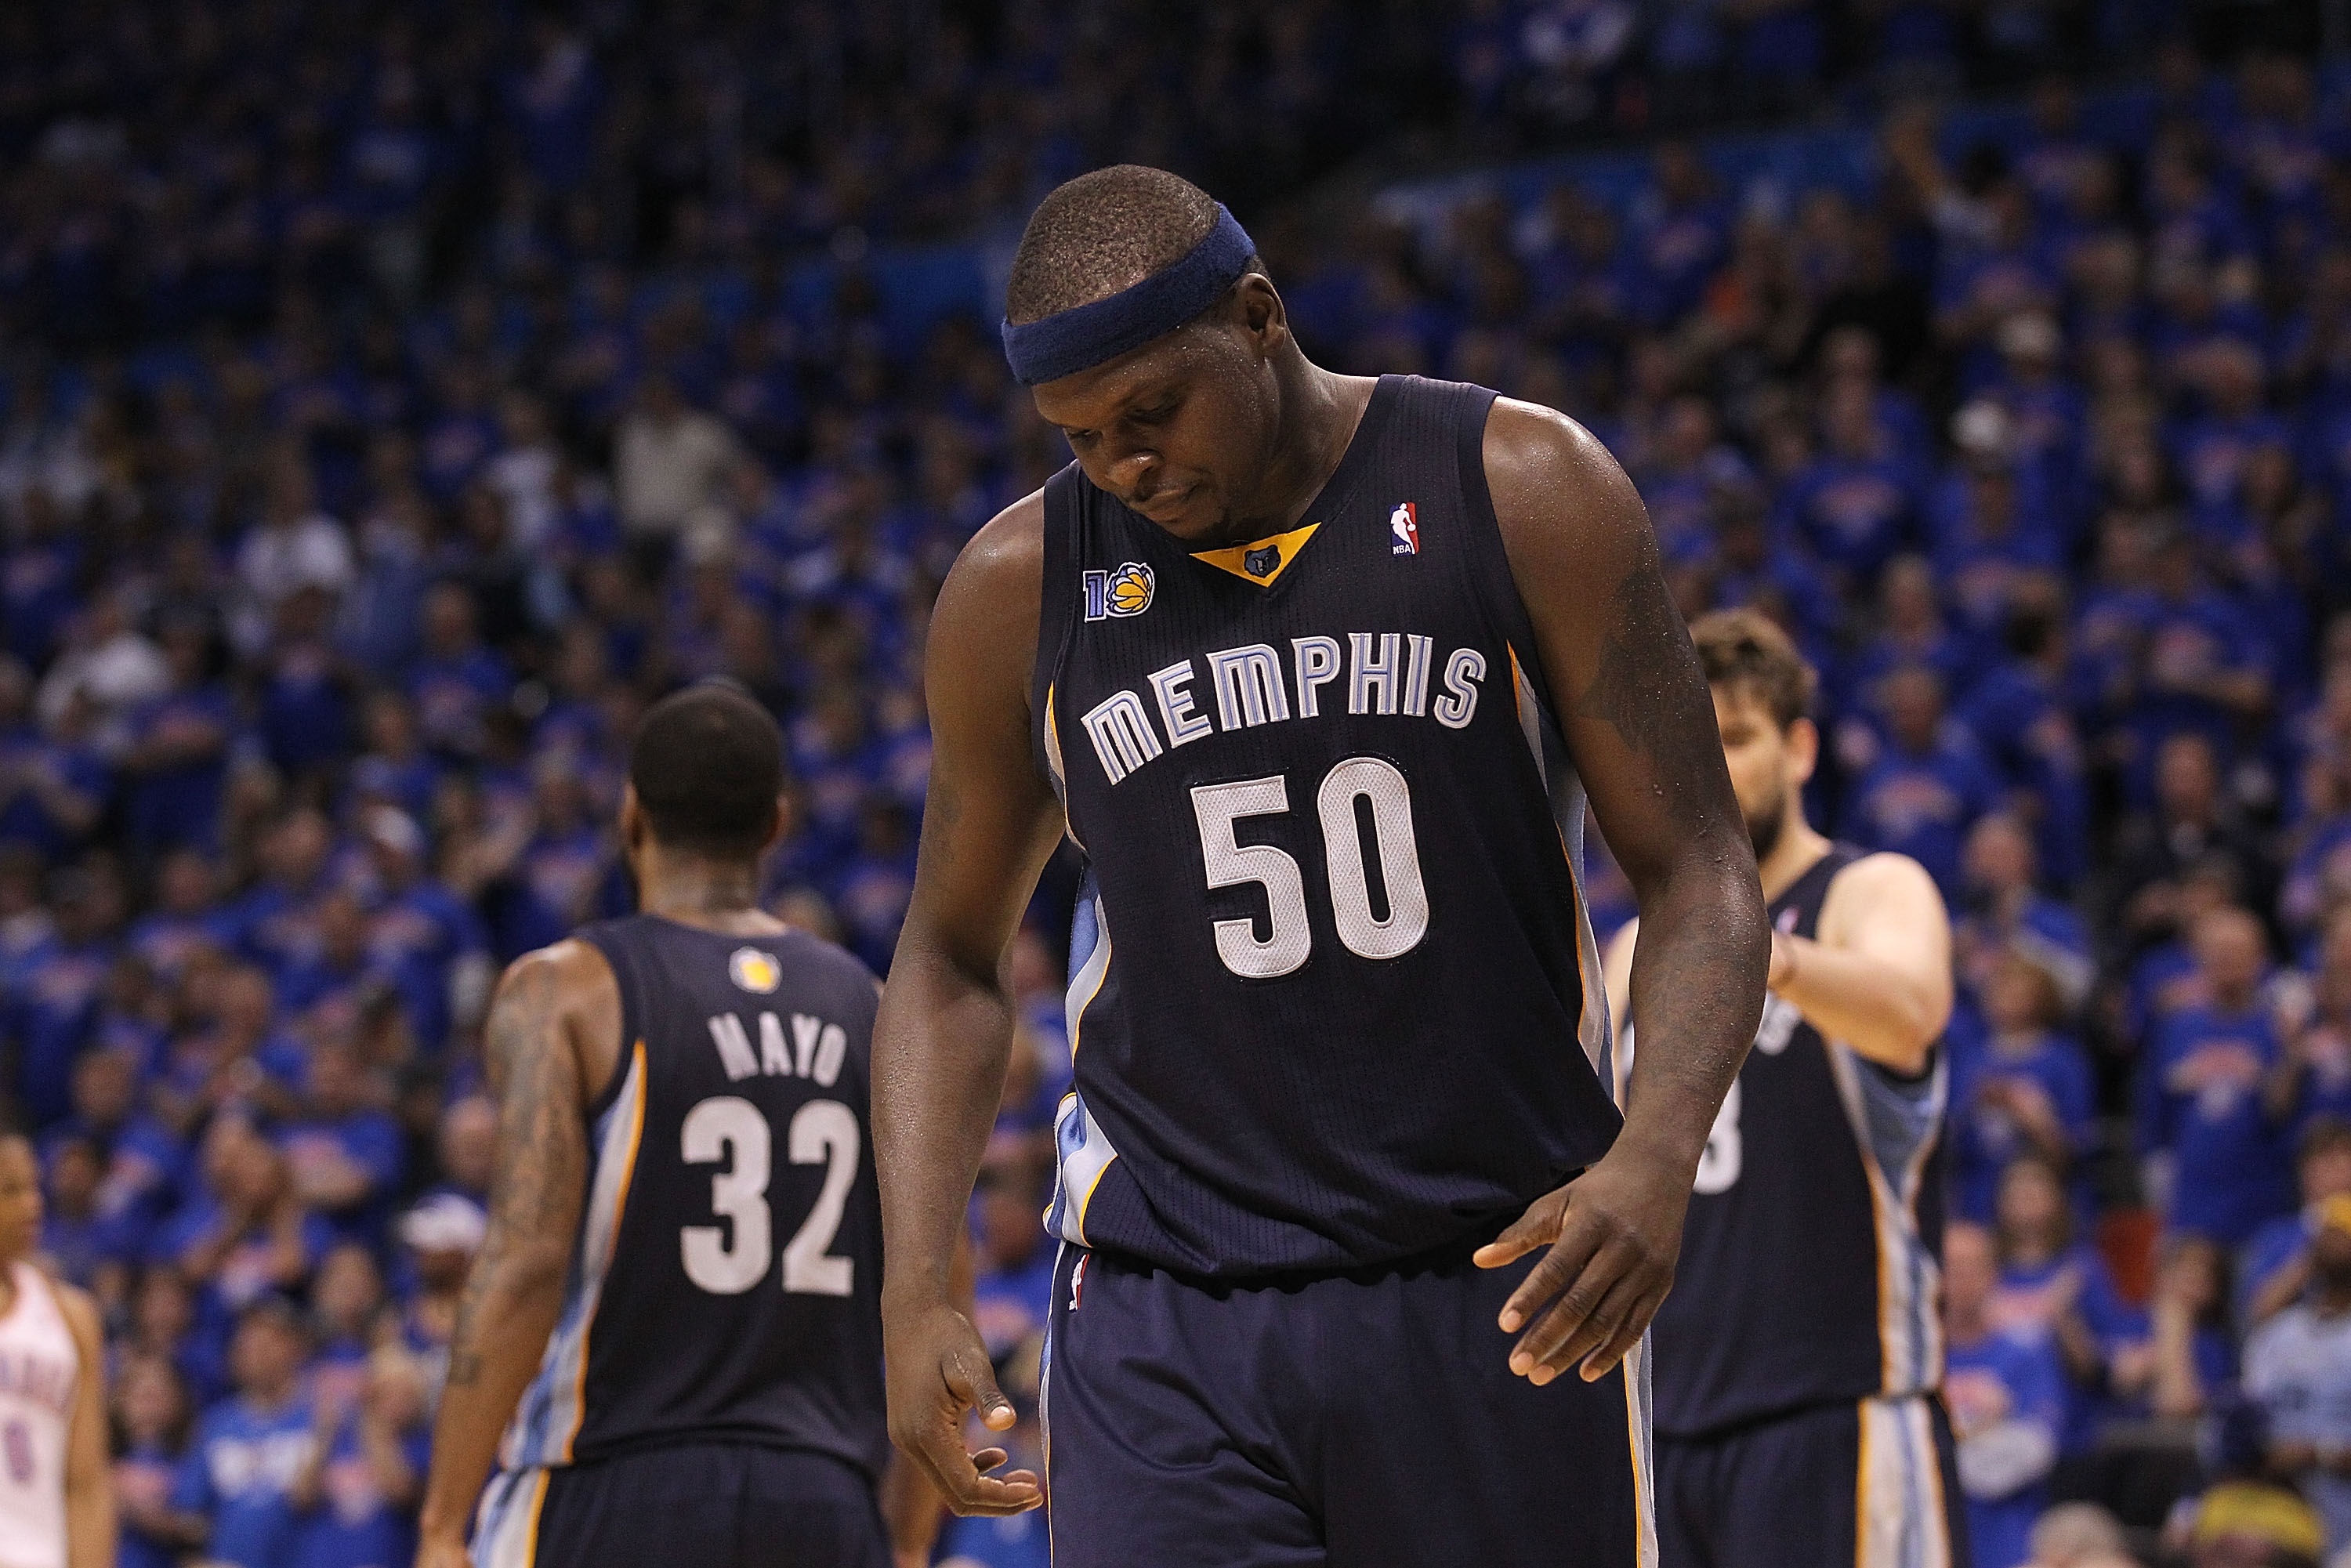 OKLAHOMA CITY, OK - MAY 15:  Forward Zach Randolph #50 of the Memphis Grizzlies reacts during a 90-105 loss against the Oklahoma City Thunder in Game Seven of the Western Conference Semifinals in the 2011 NBA Playoffs on May 15, 2011 at Oklahoma City Aren